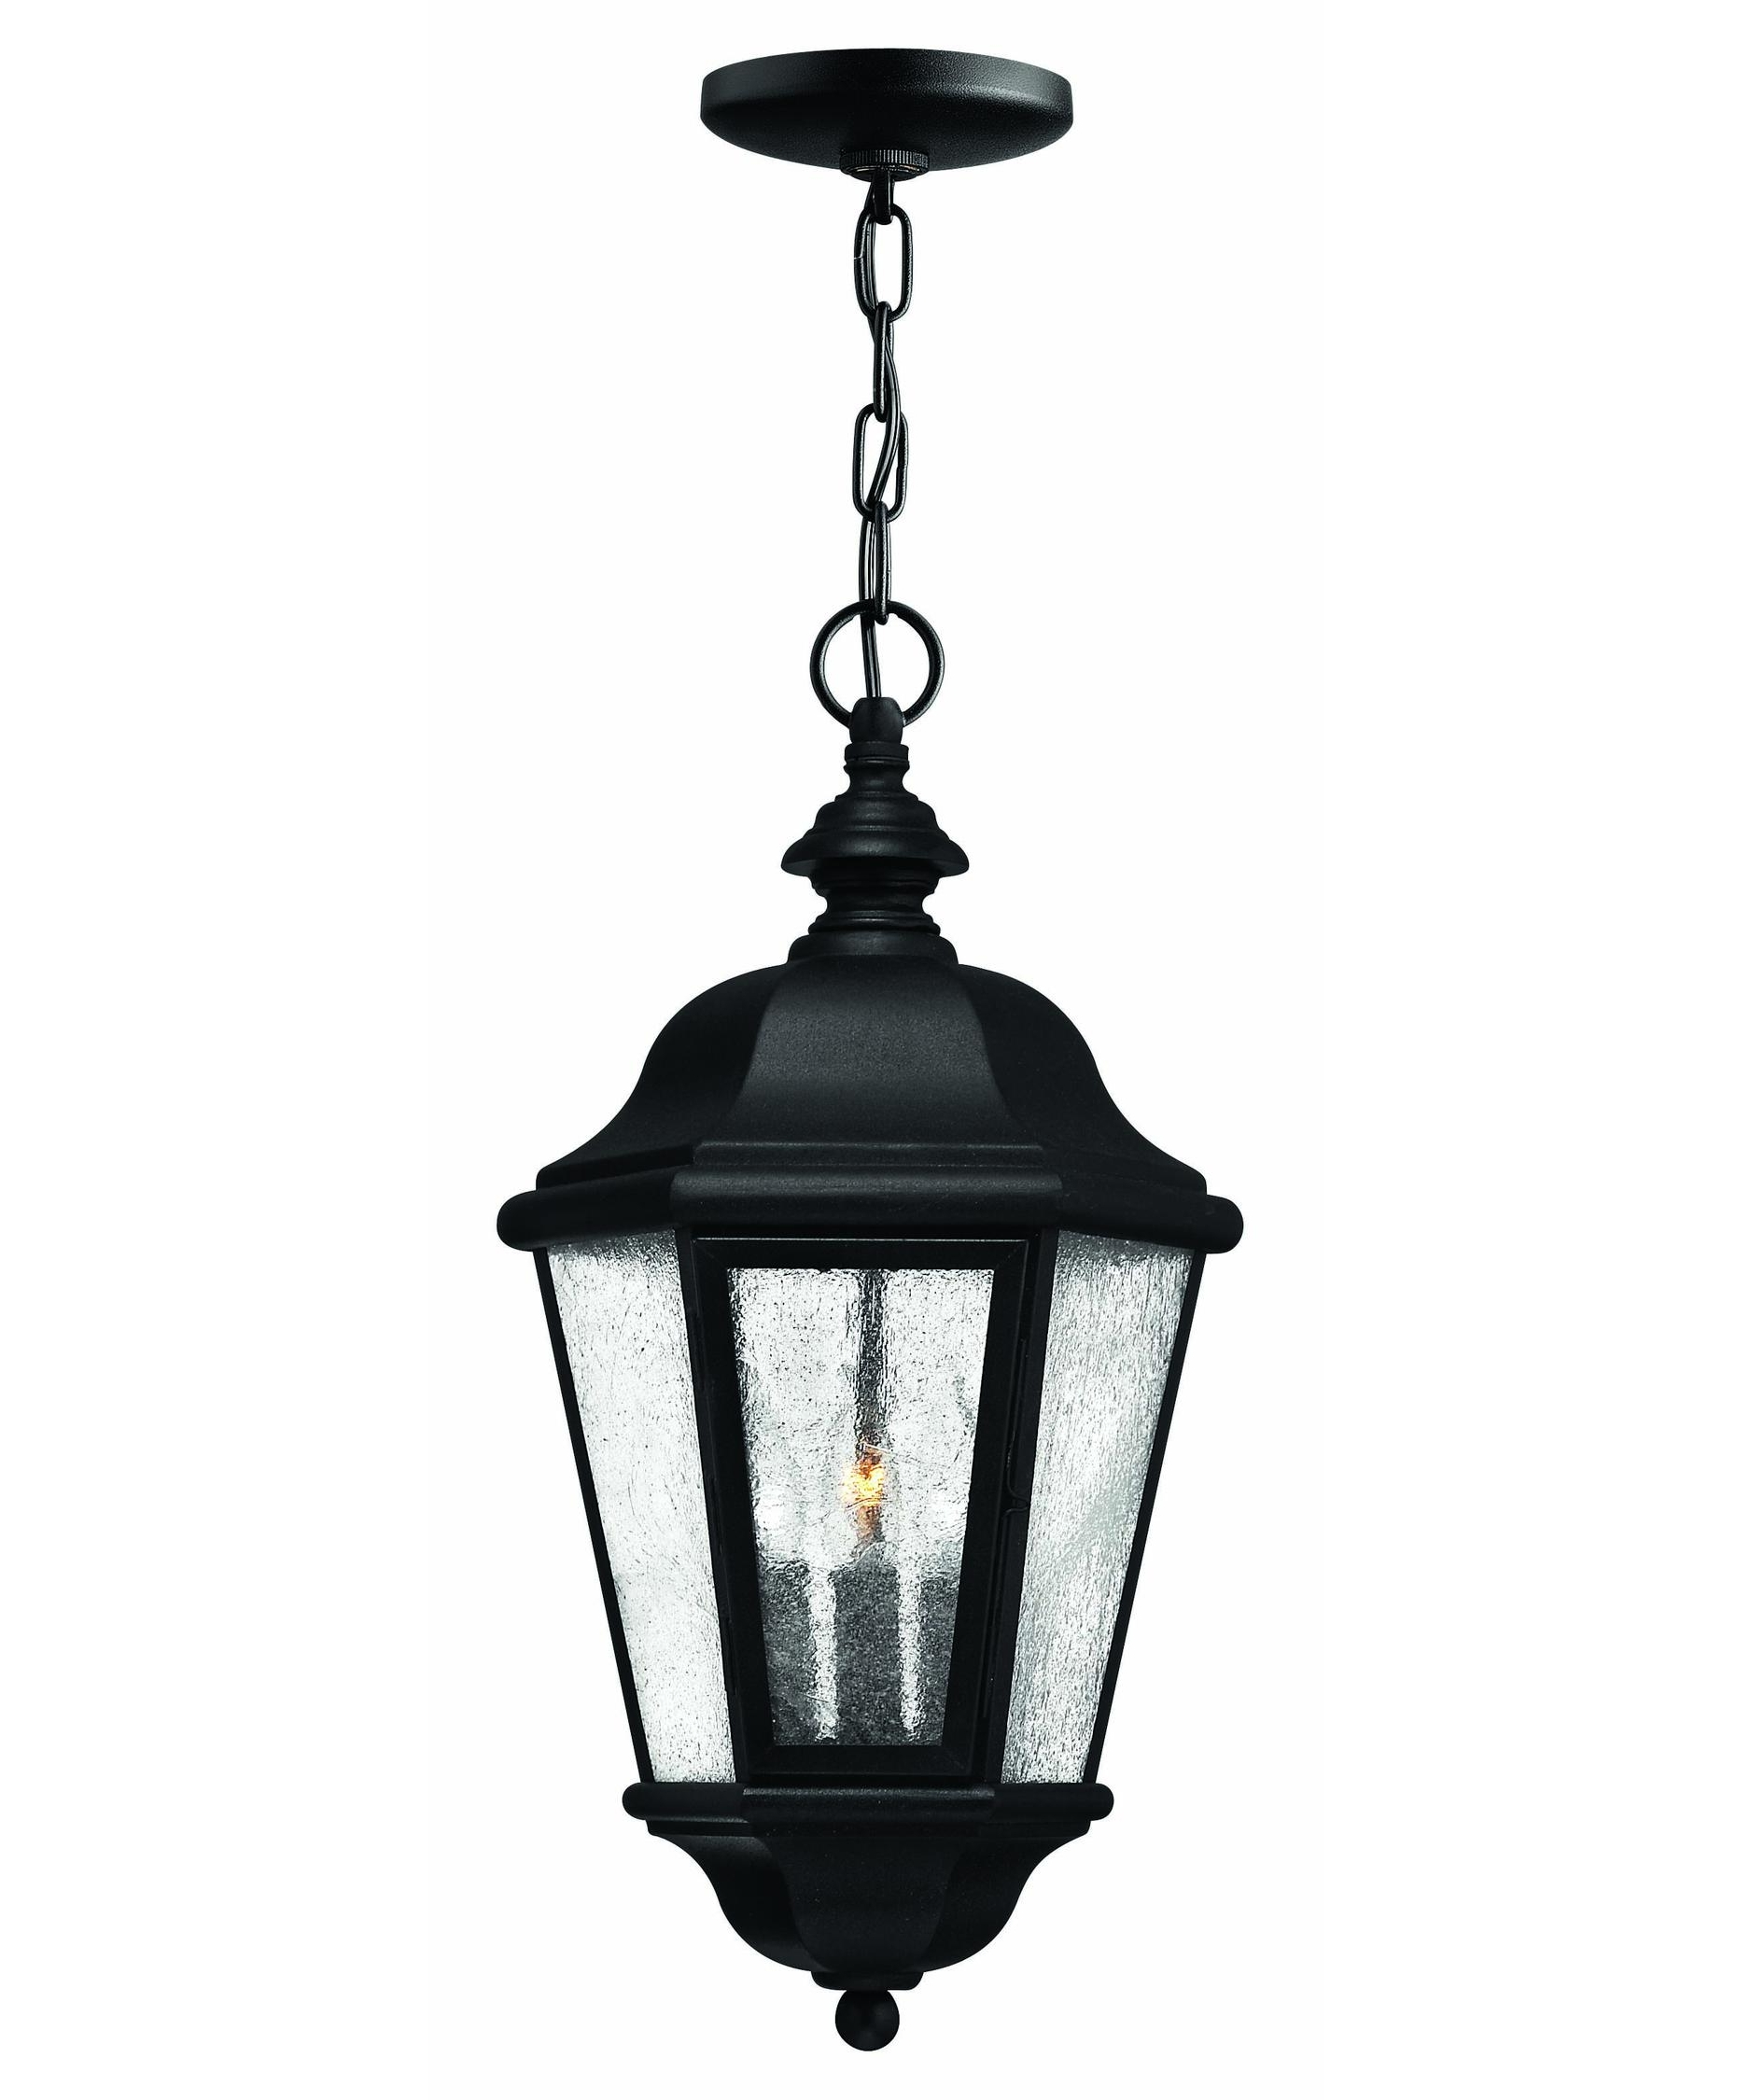 Hinkley Outdoor Ceiling Lights In Well Known Hinkley Lighting 1672 Edgewater 10 Inch Wide 3 Light Outdoor Hanging (Gallery 2 of 20)